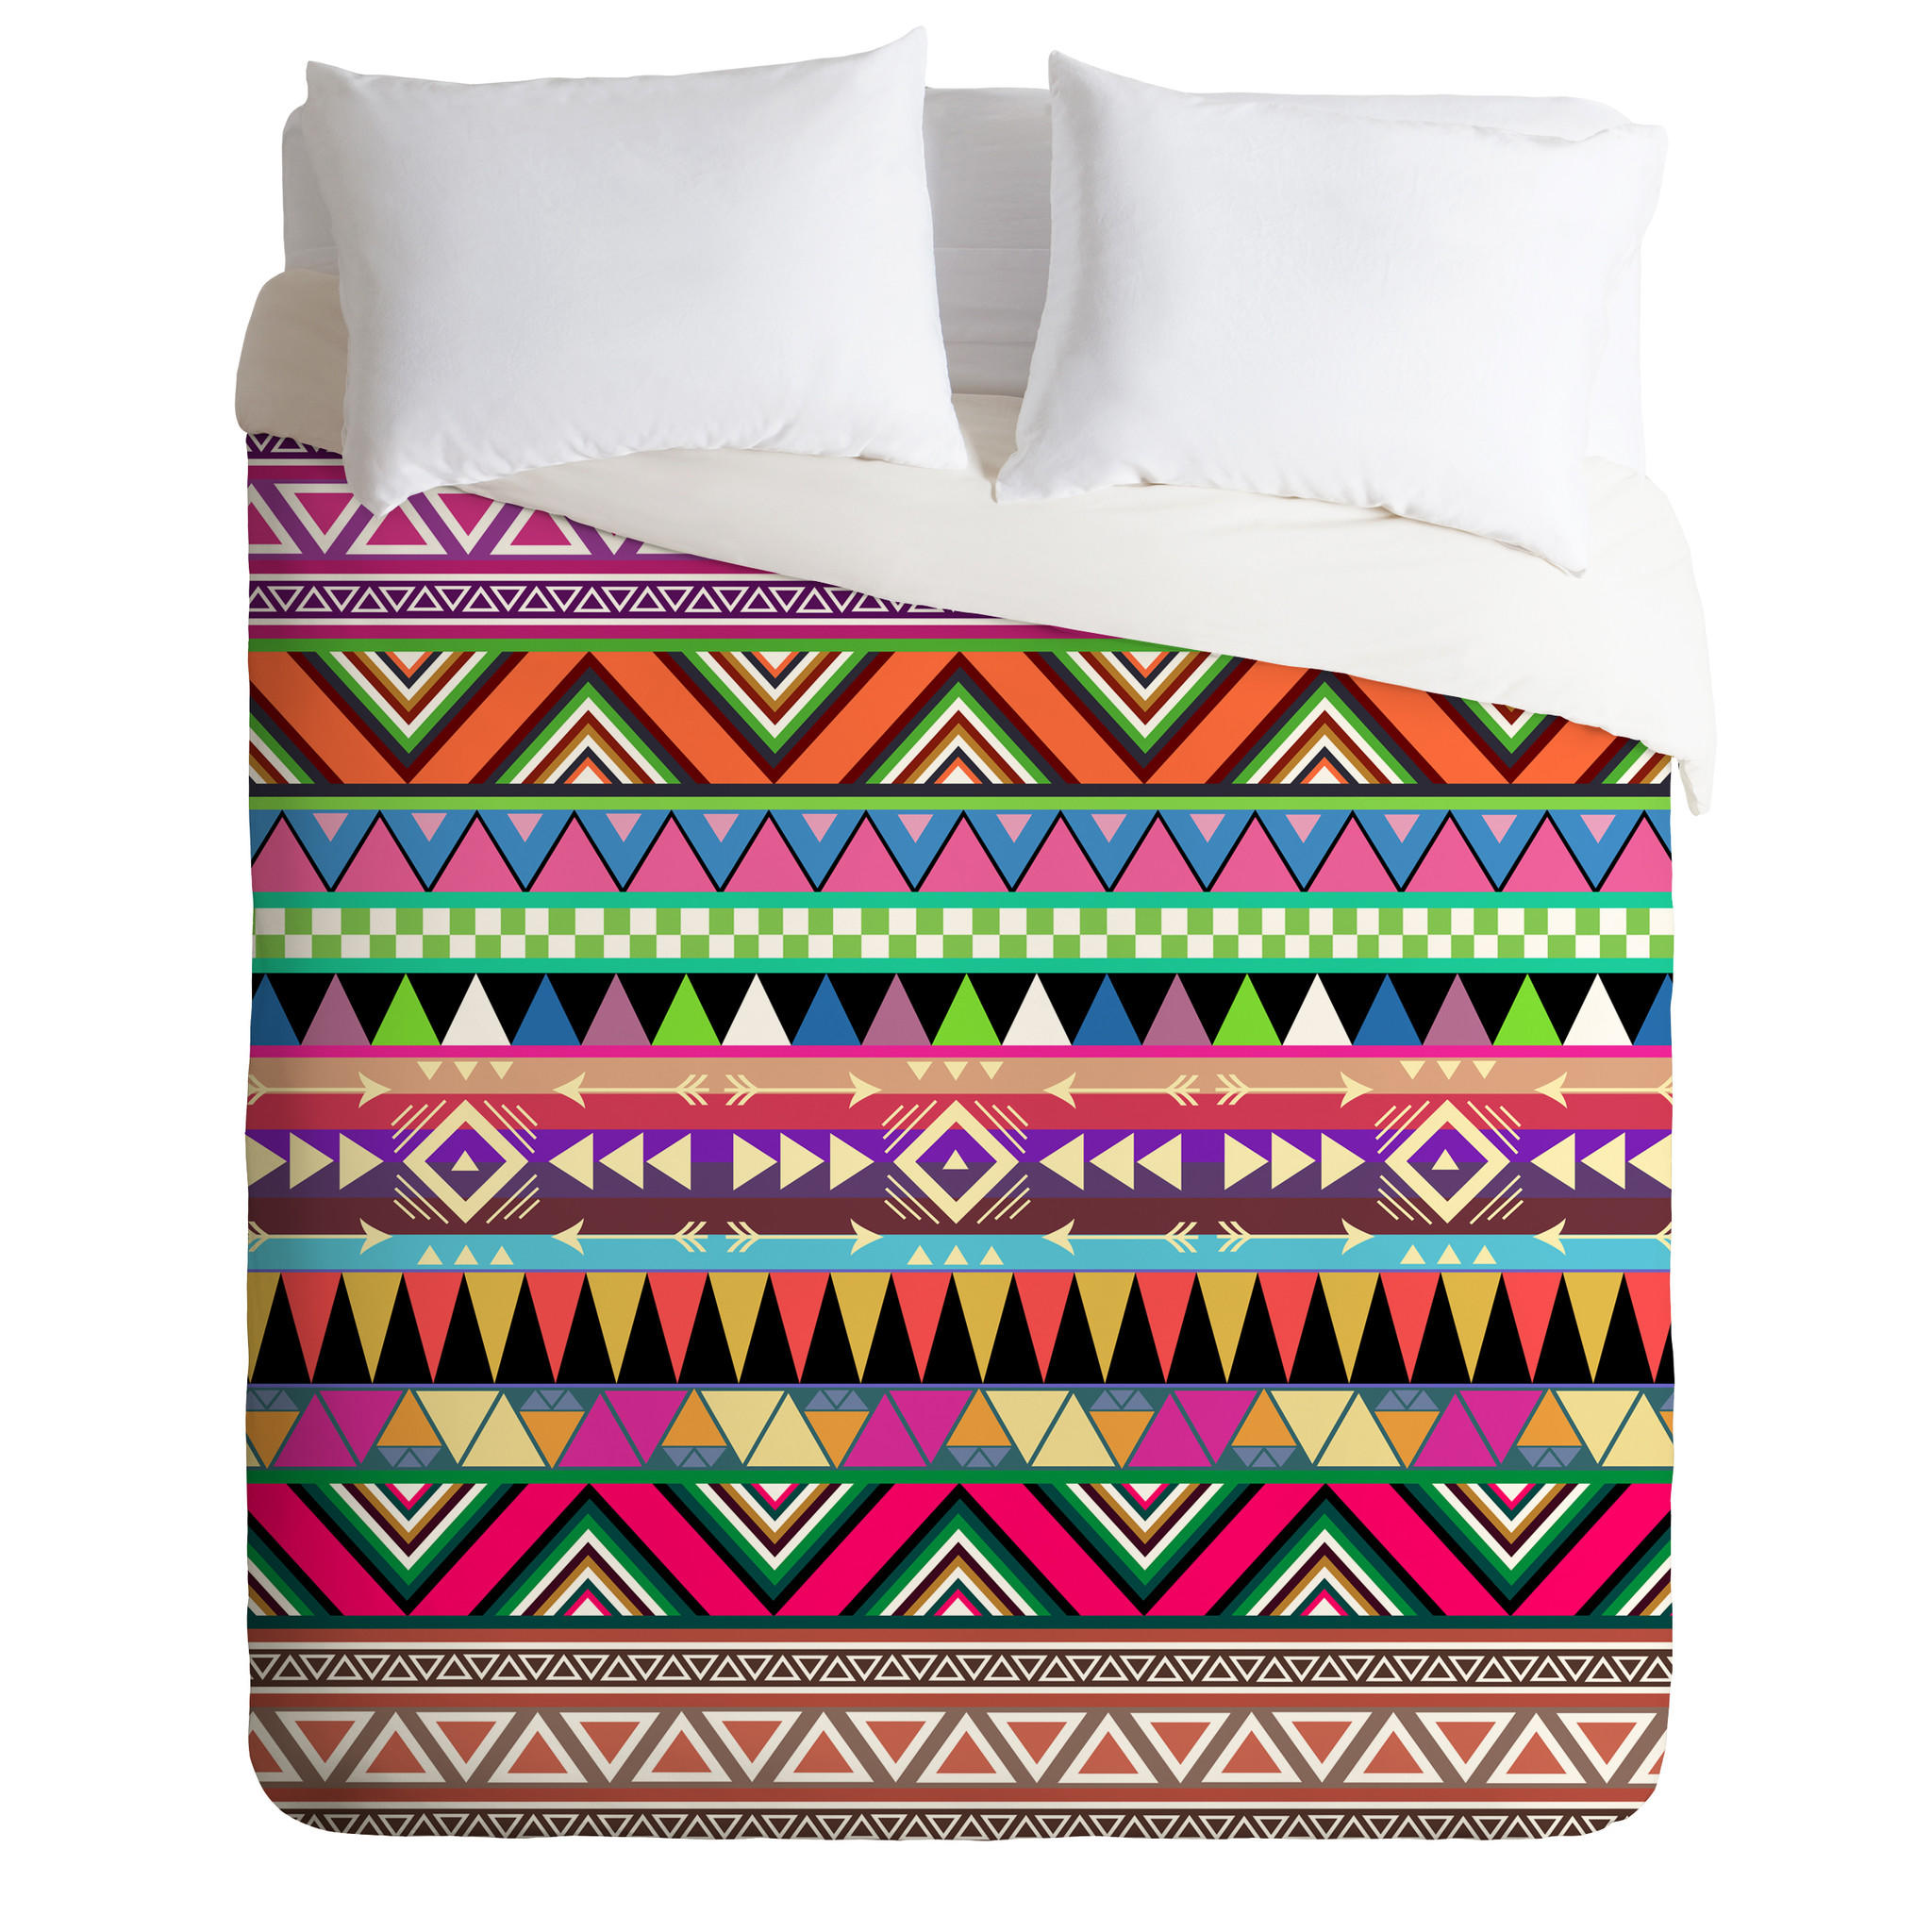 Bianca Green Overdose Duvet Cover From DENY Designs